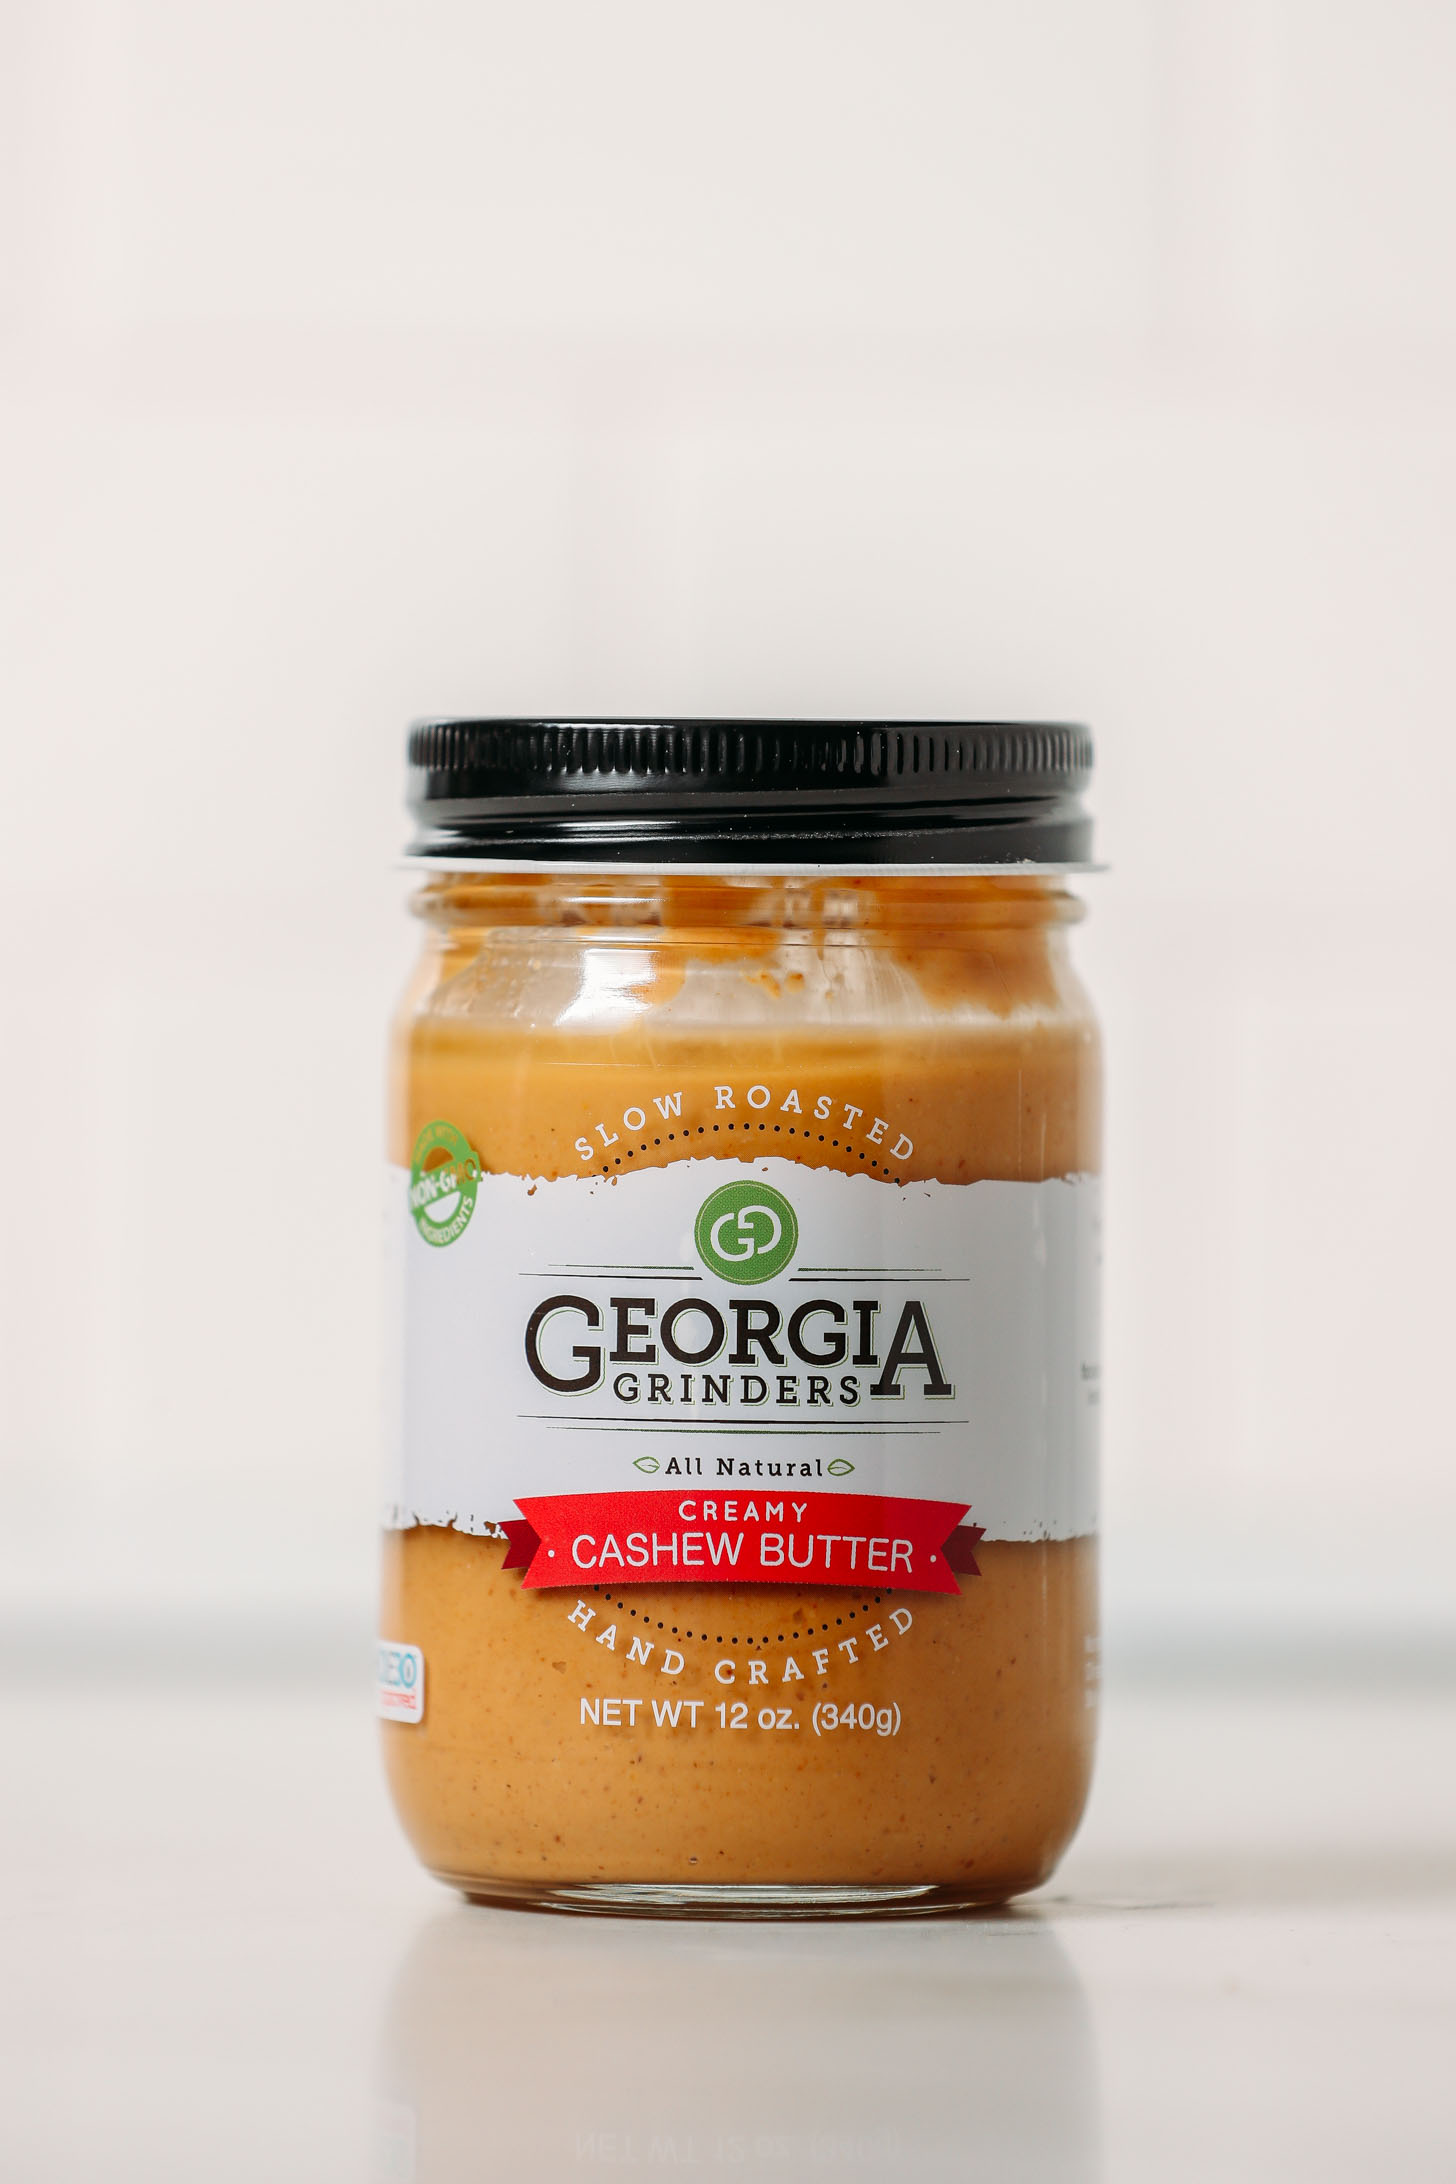 Jar of Georgia Grinders Creamy Cashew Butter as part of our cashew butters review